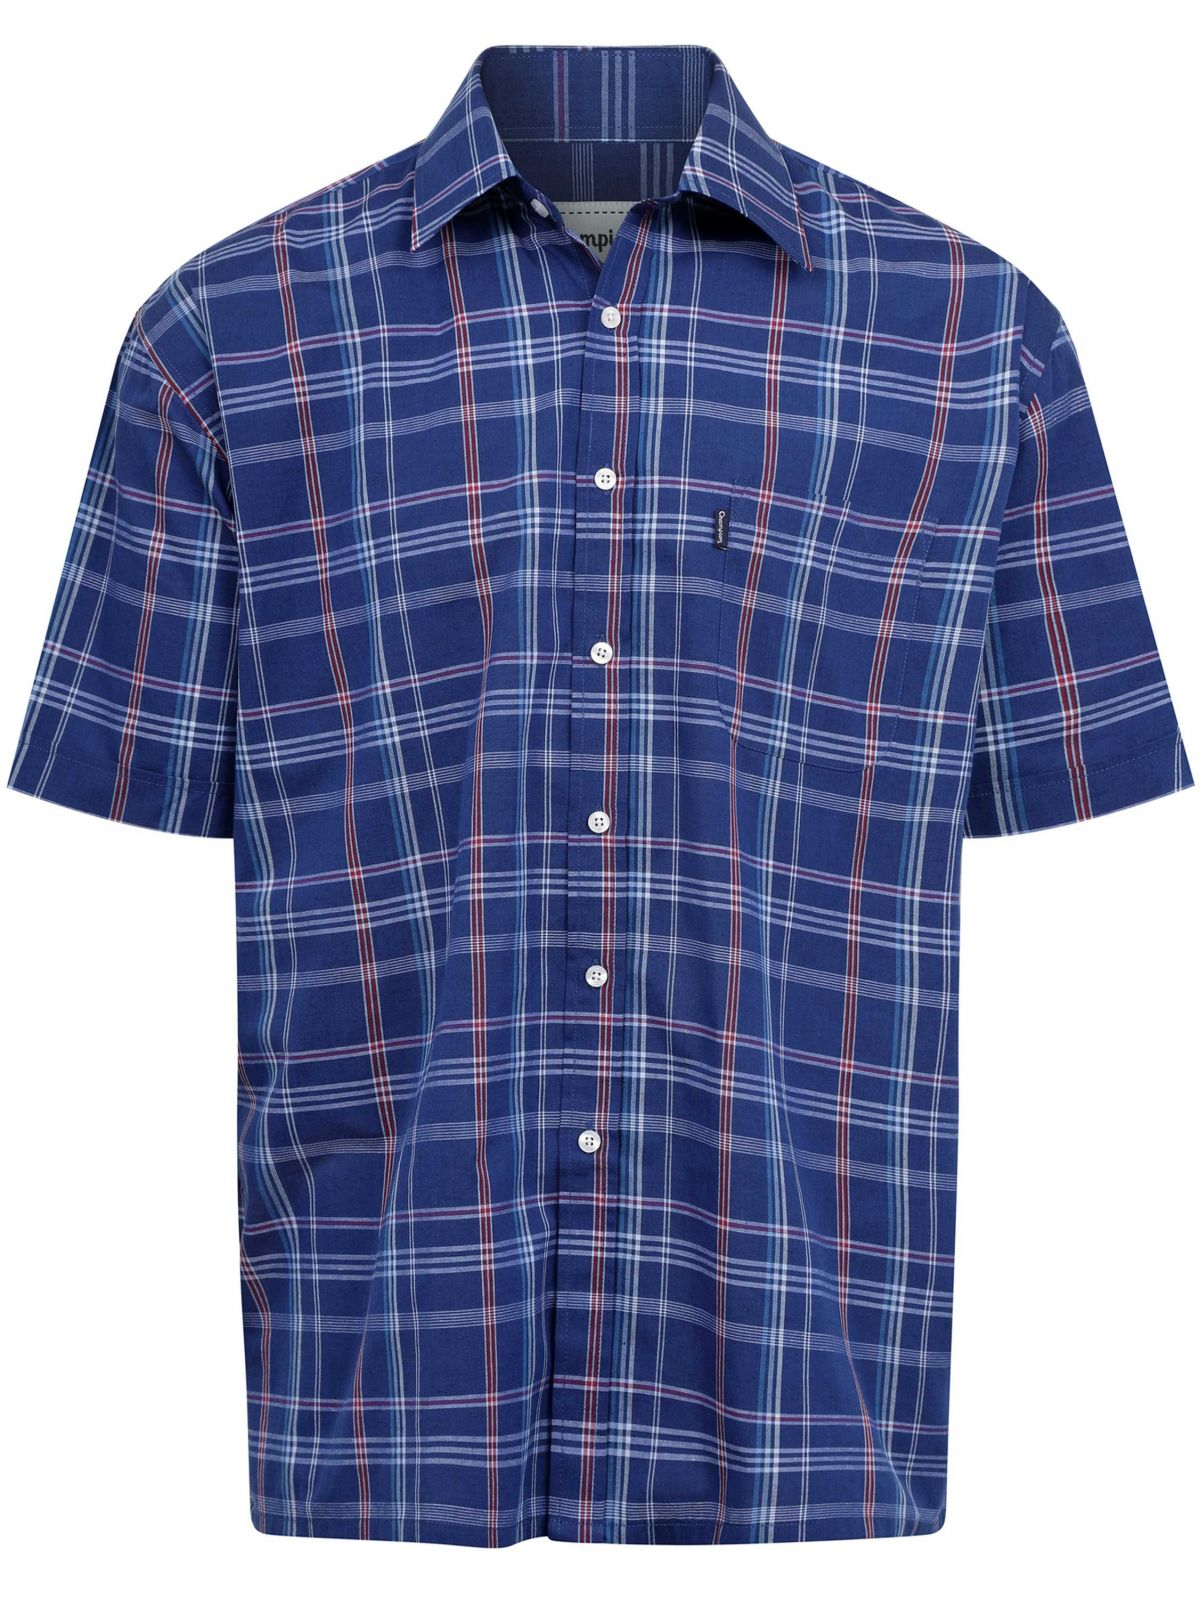 Mens Designer Short Sleeve Checked Shirt